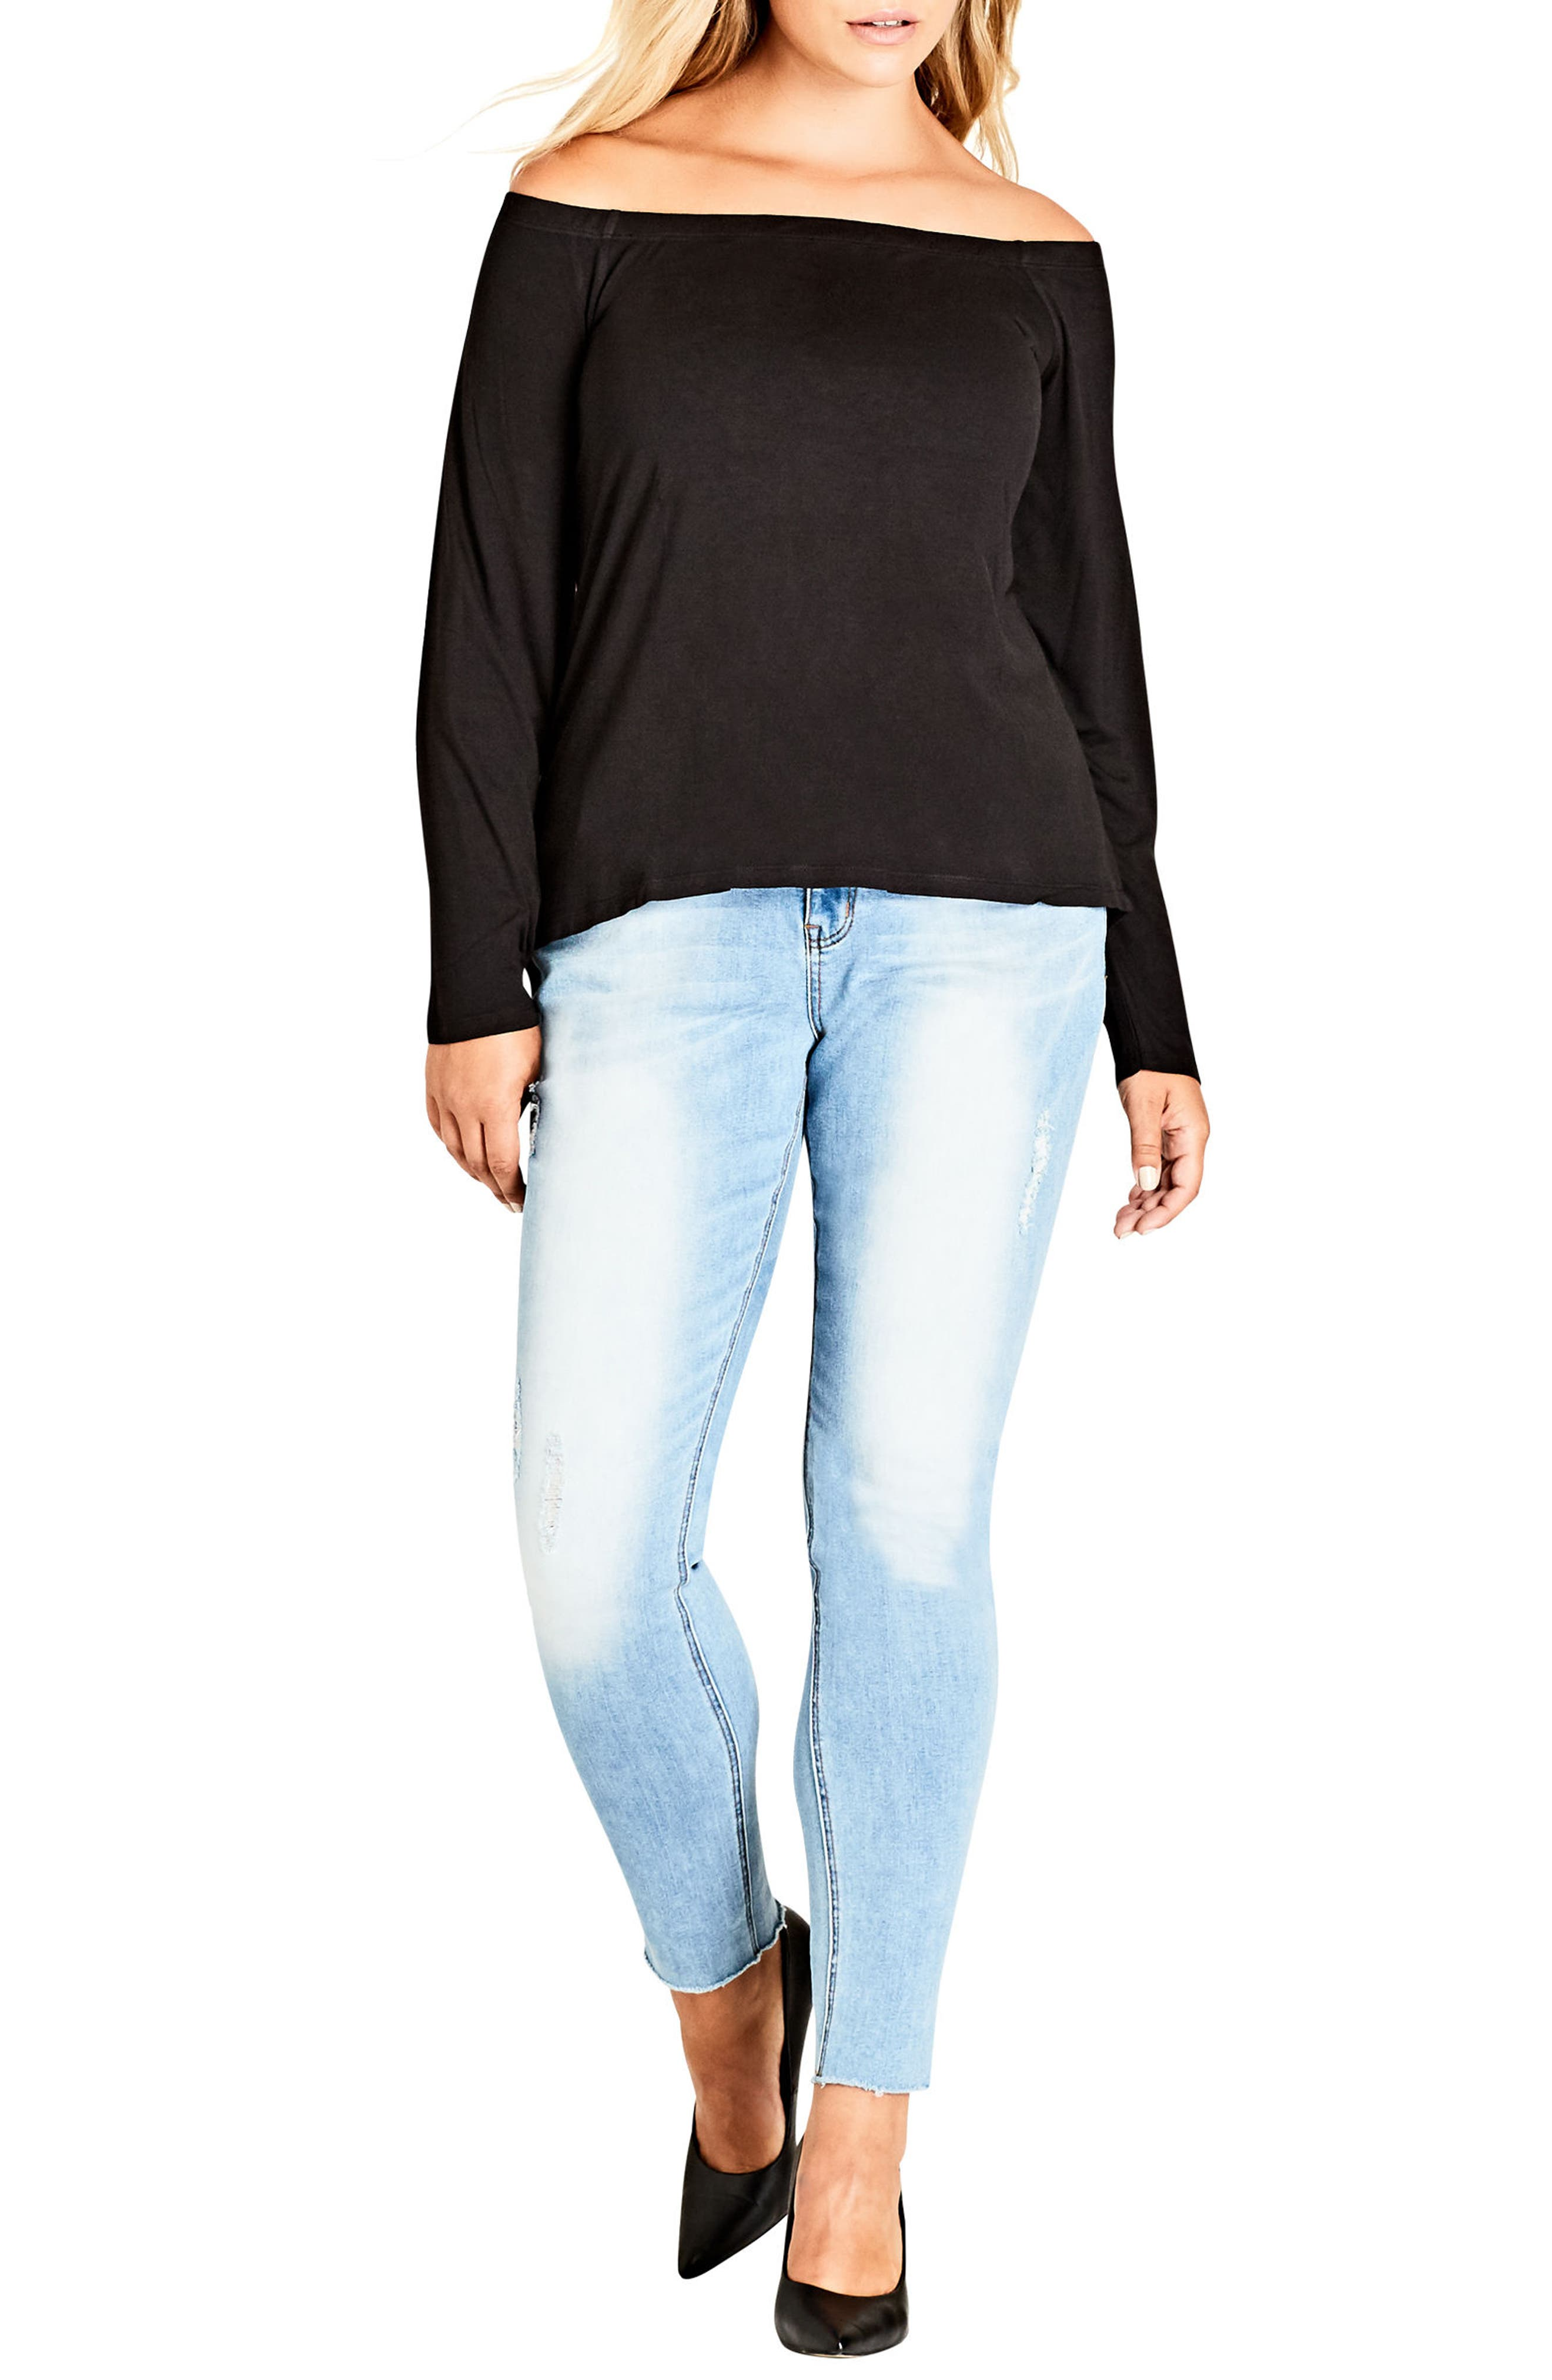 Main Image - City Chic Basic Off the Shoulder Top (Plus Size)